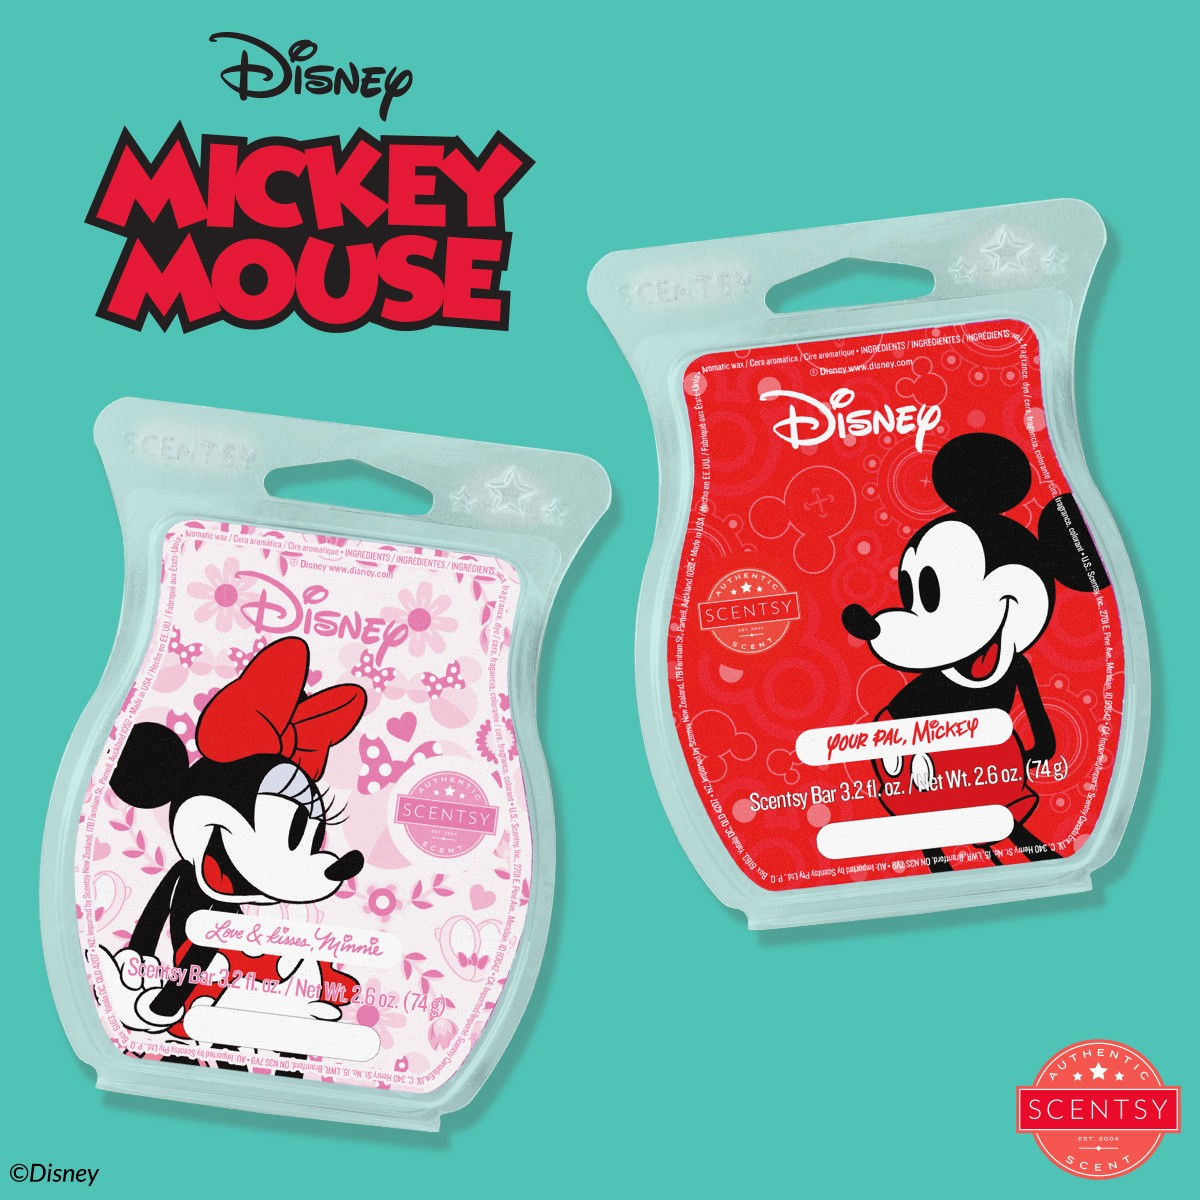 Scentsy Disney Collection Now Available - LaughingPlace.com